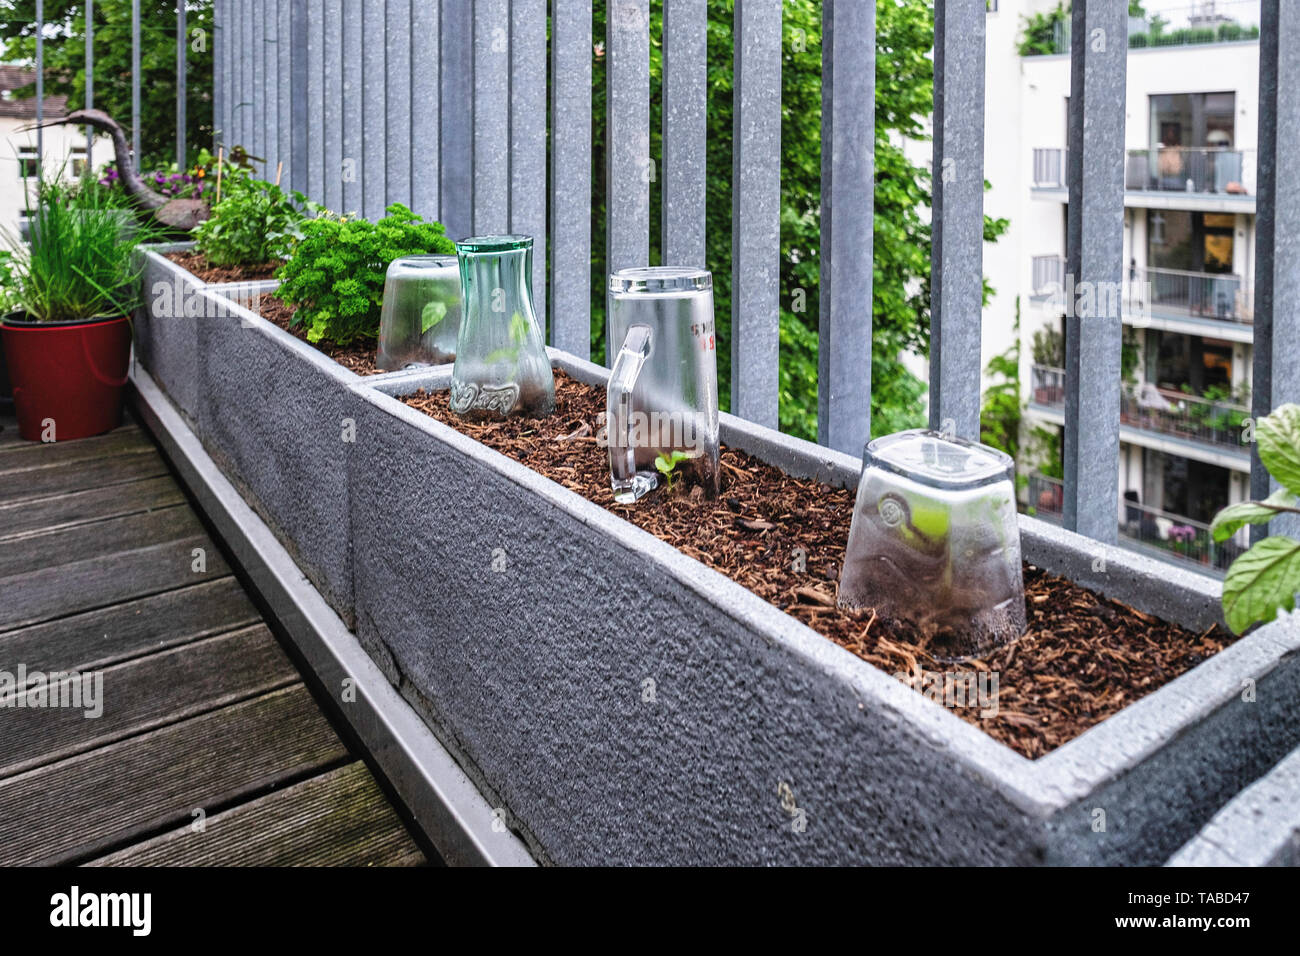 Balcony herb garden. Pot plants with chilli plants covered in drinking glasses to protect from cold wind - Stock Image